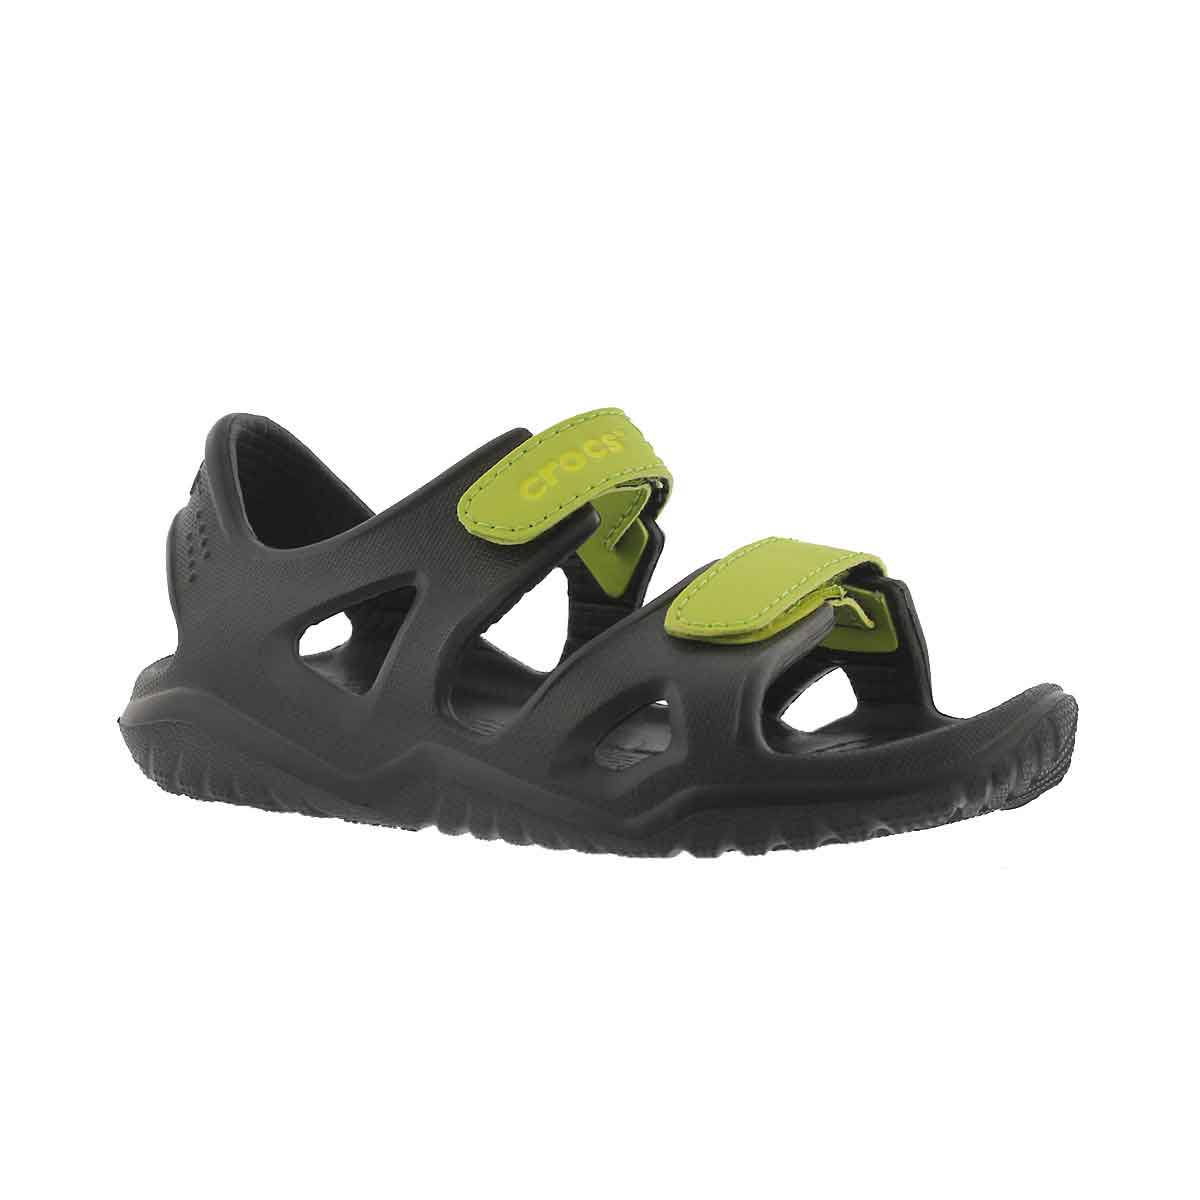 Bys Swiftwater River blk/grn casual sndl